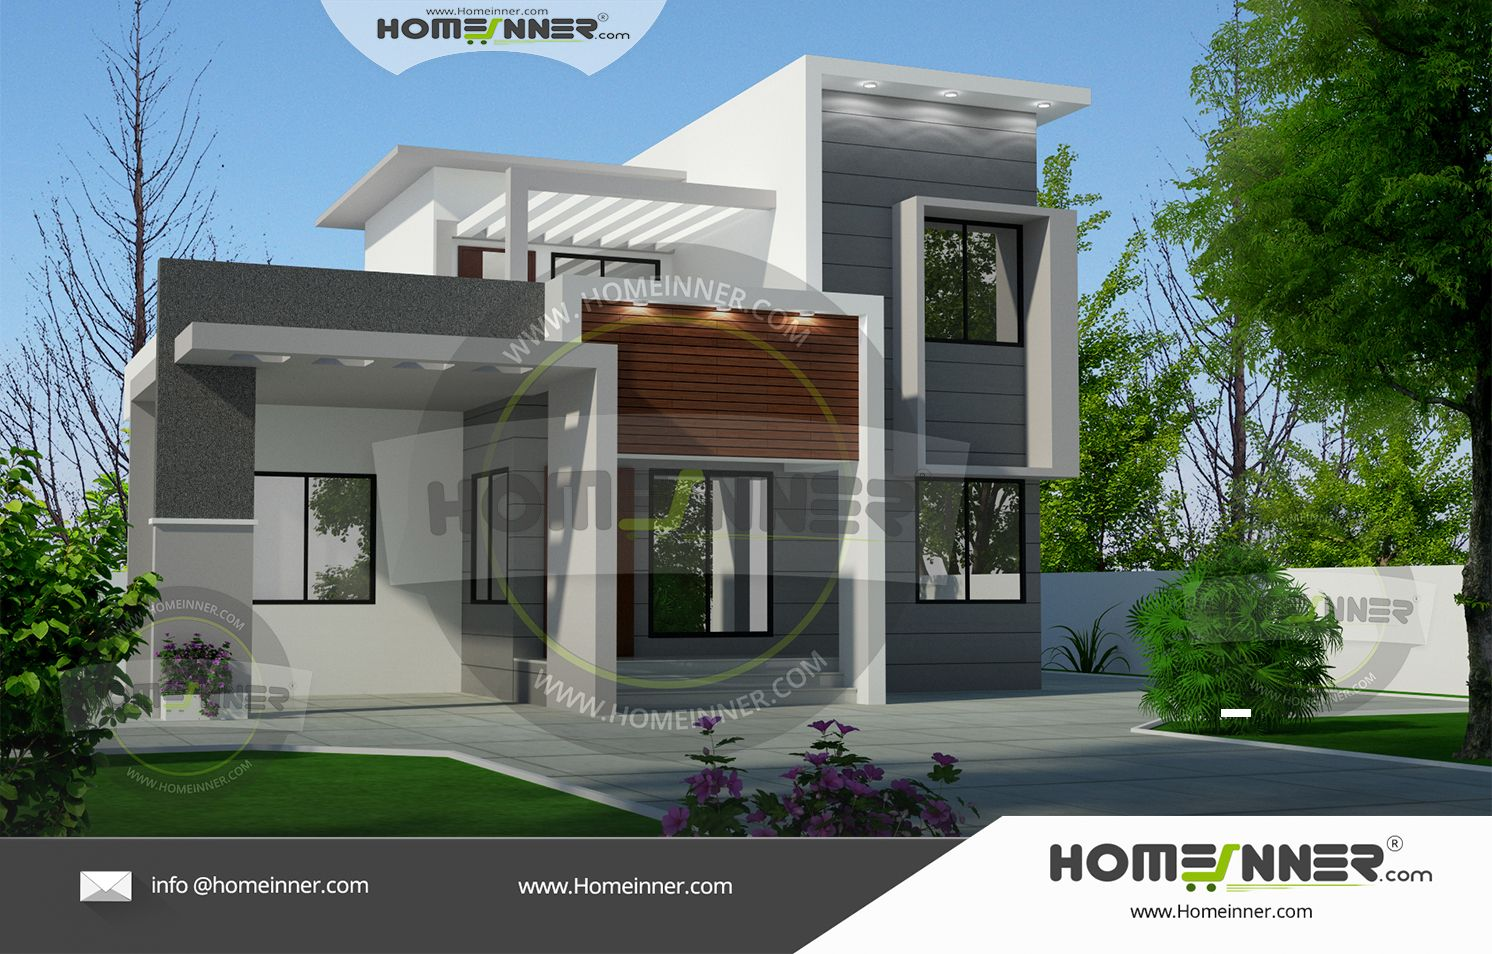 Best Kitchen Gallery: Hind 8002 Duplex House Plans Plan Design And House of Residential Home Design  on rachelxblog.com